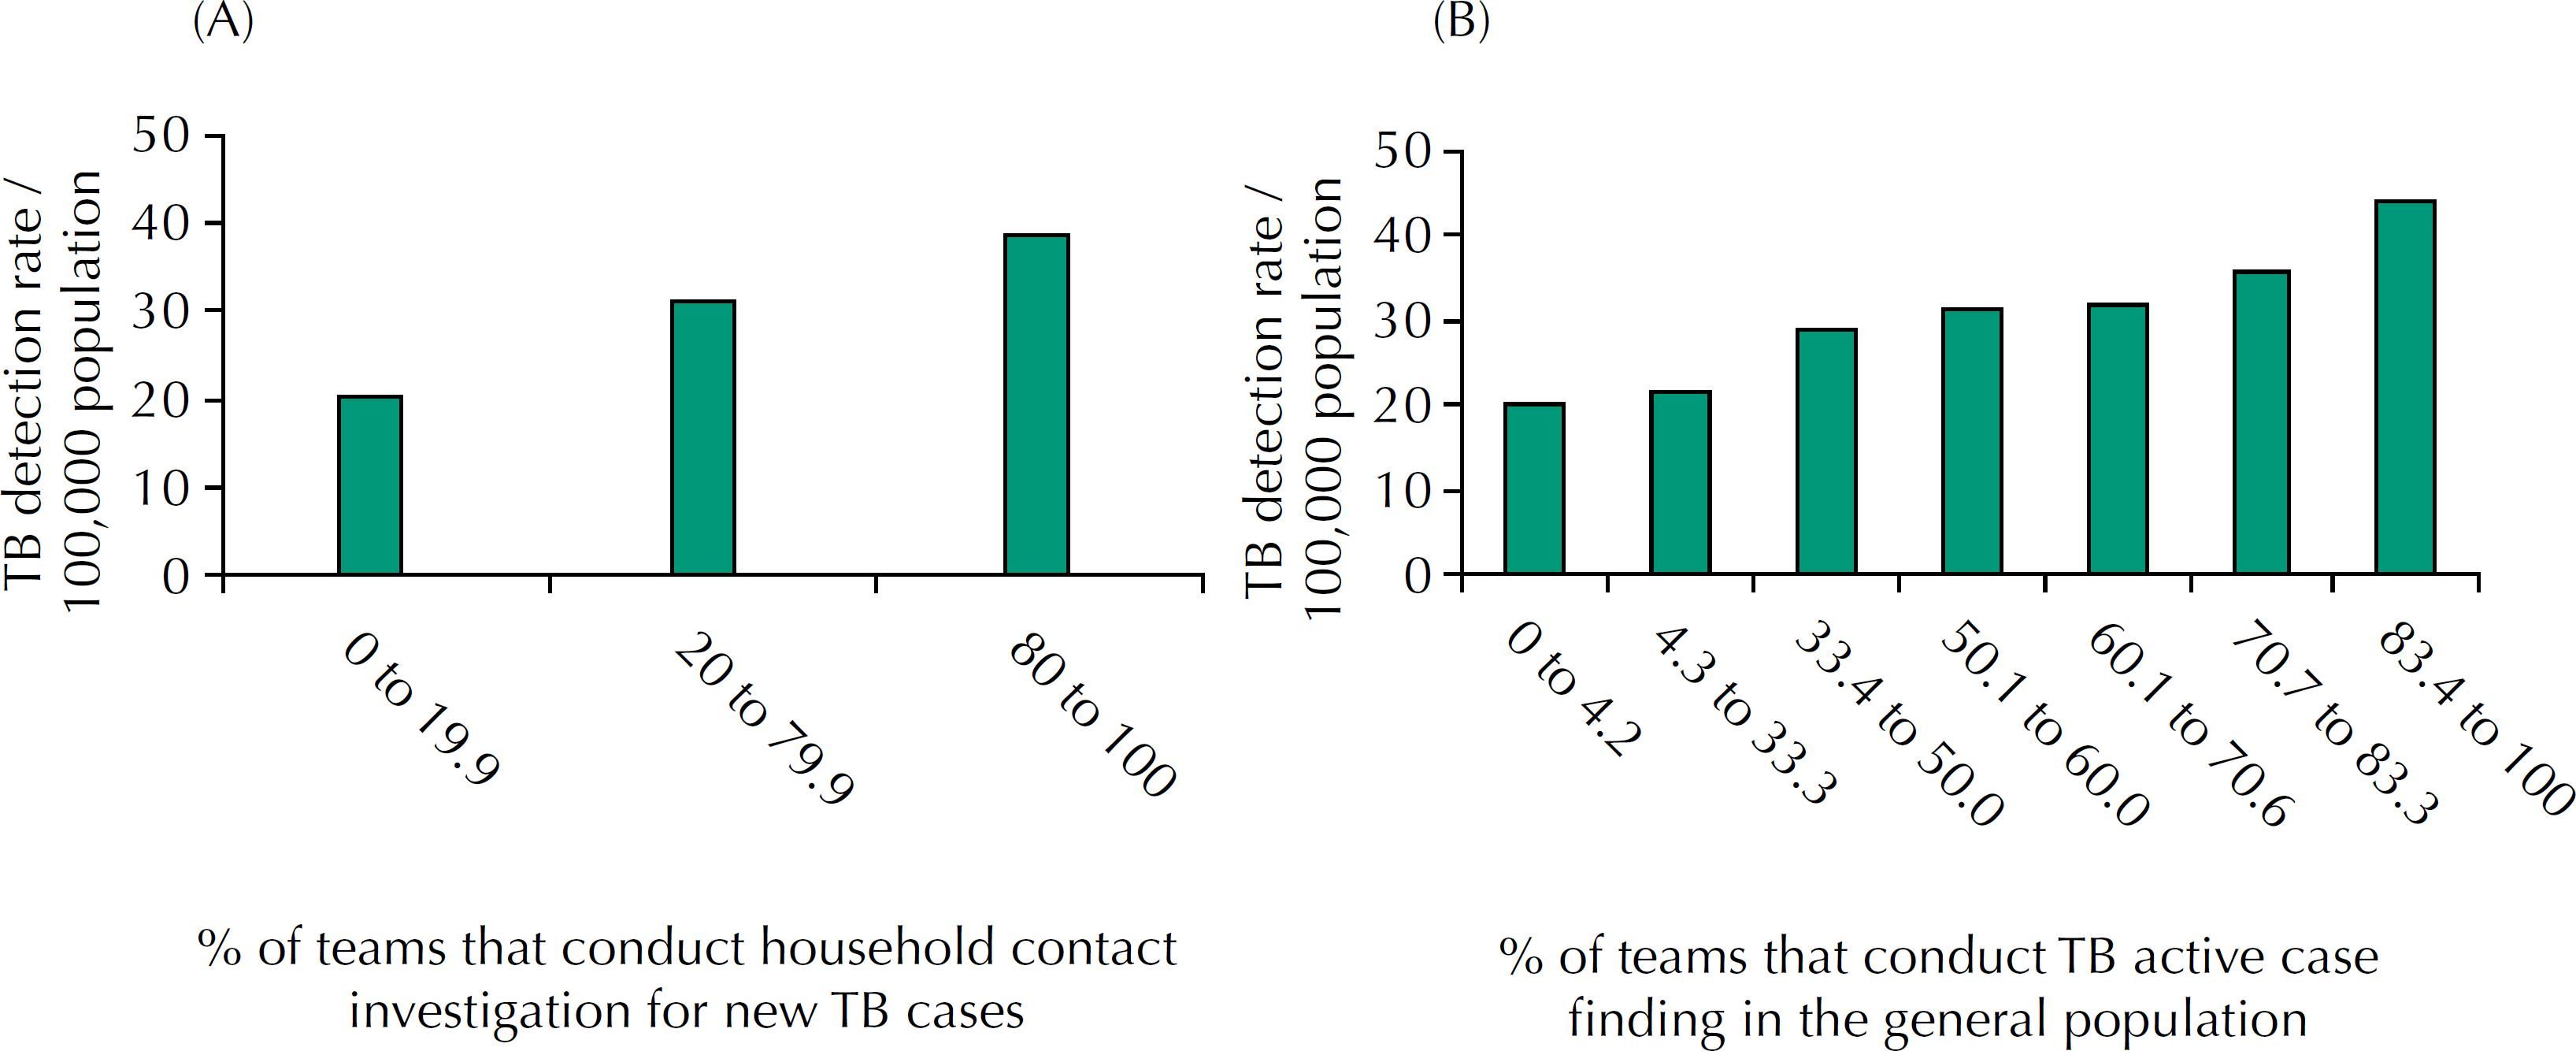 Tuberculosis (TB) detection rate according to the proportion of teams that conduct contact investigation and TB active case finding. Brazil, 2012 to 2014. (A) Household contacts investigation of new TB cases. (B) TB active case finding in the general population.